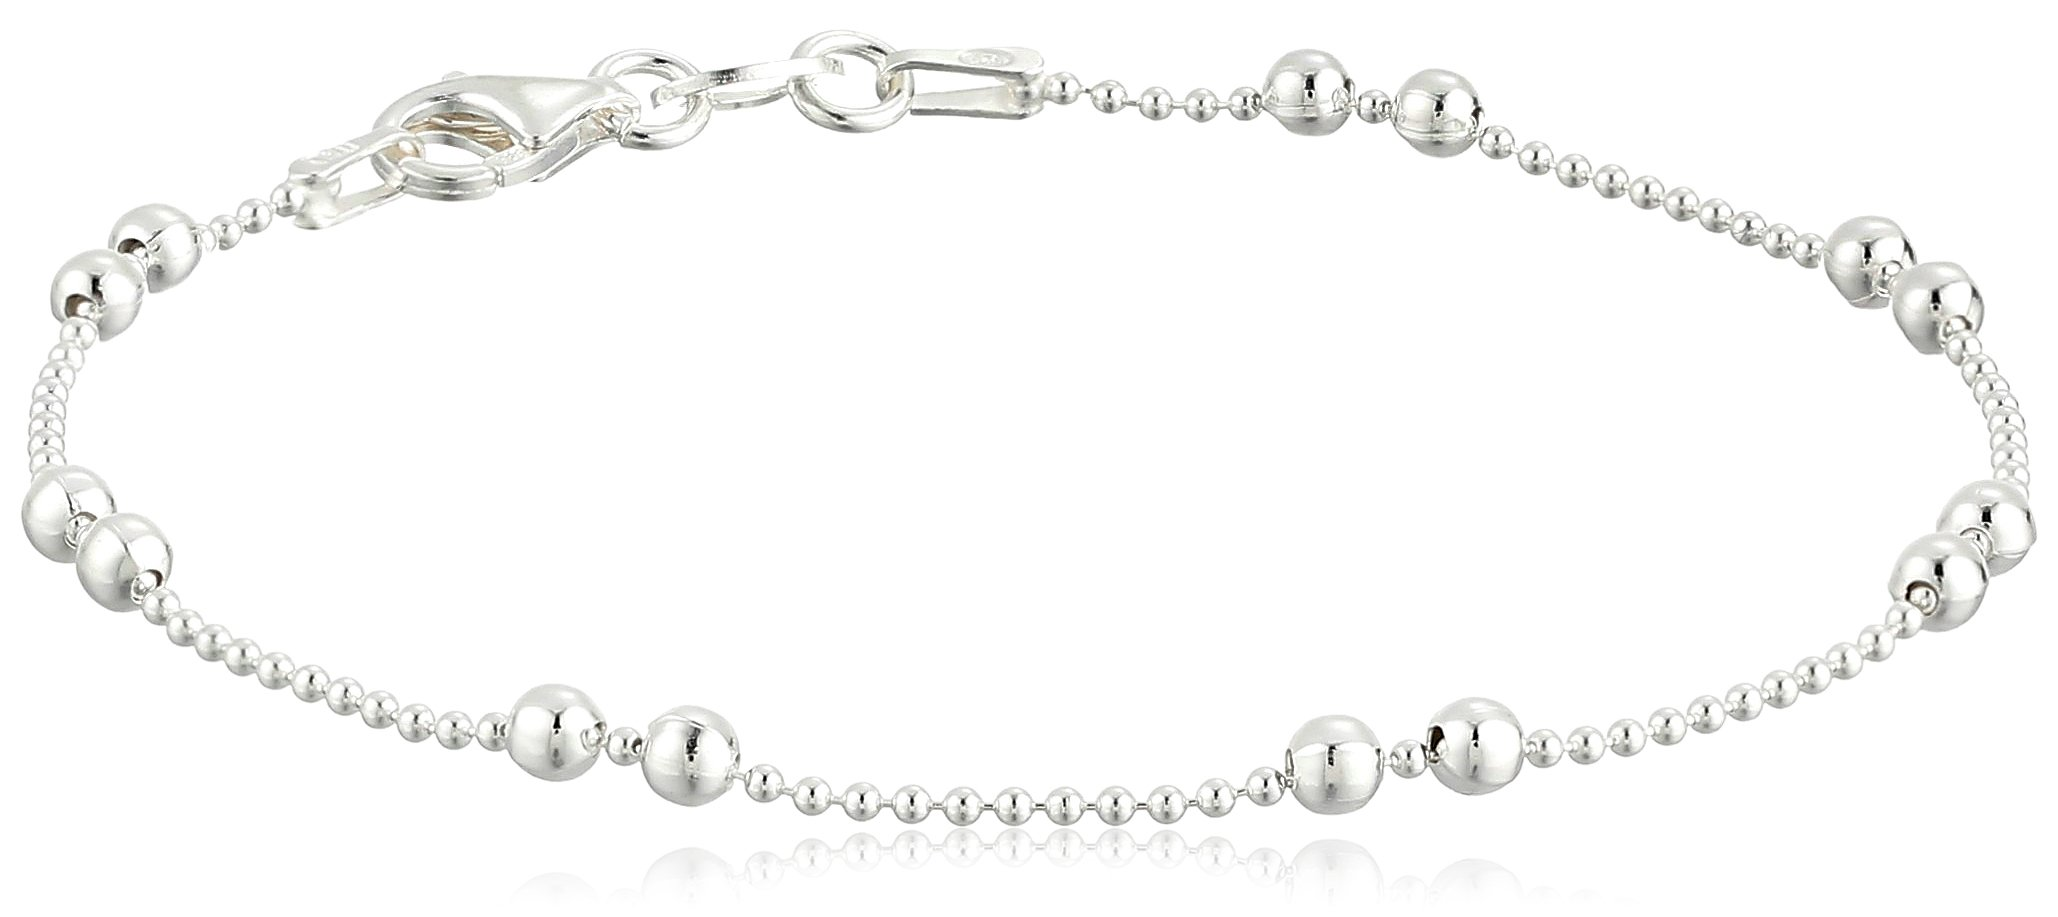 Sterling Silver Tarnish Free Shot Bead Bracelet with Double Bead Stations, 7.5'' by Amazon Collection